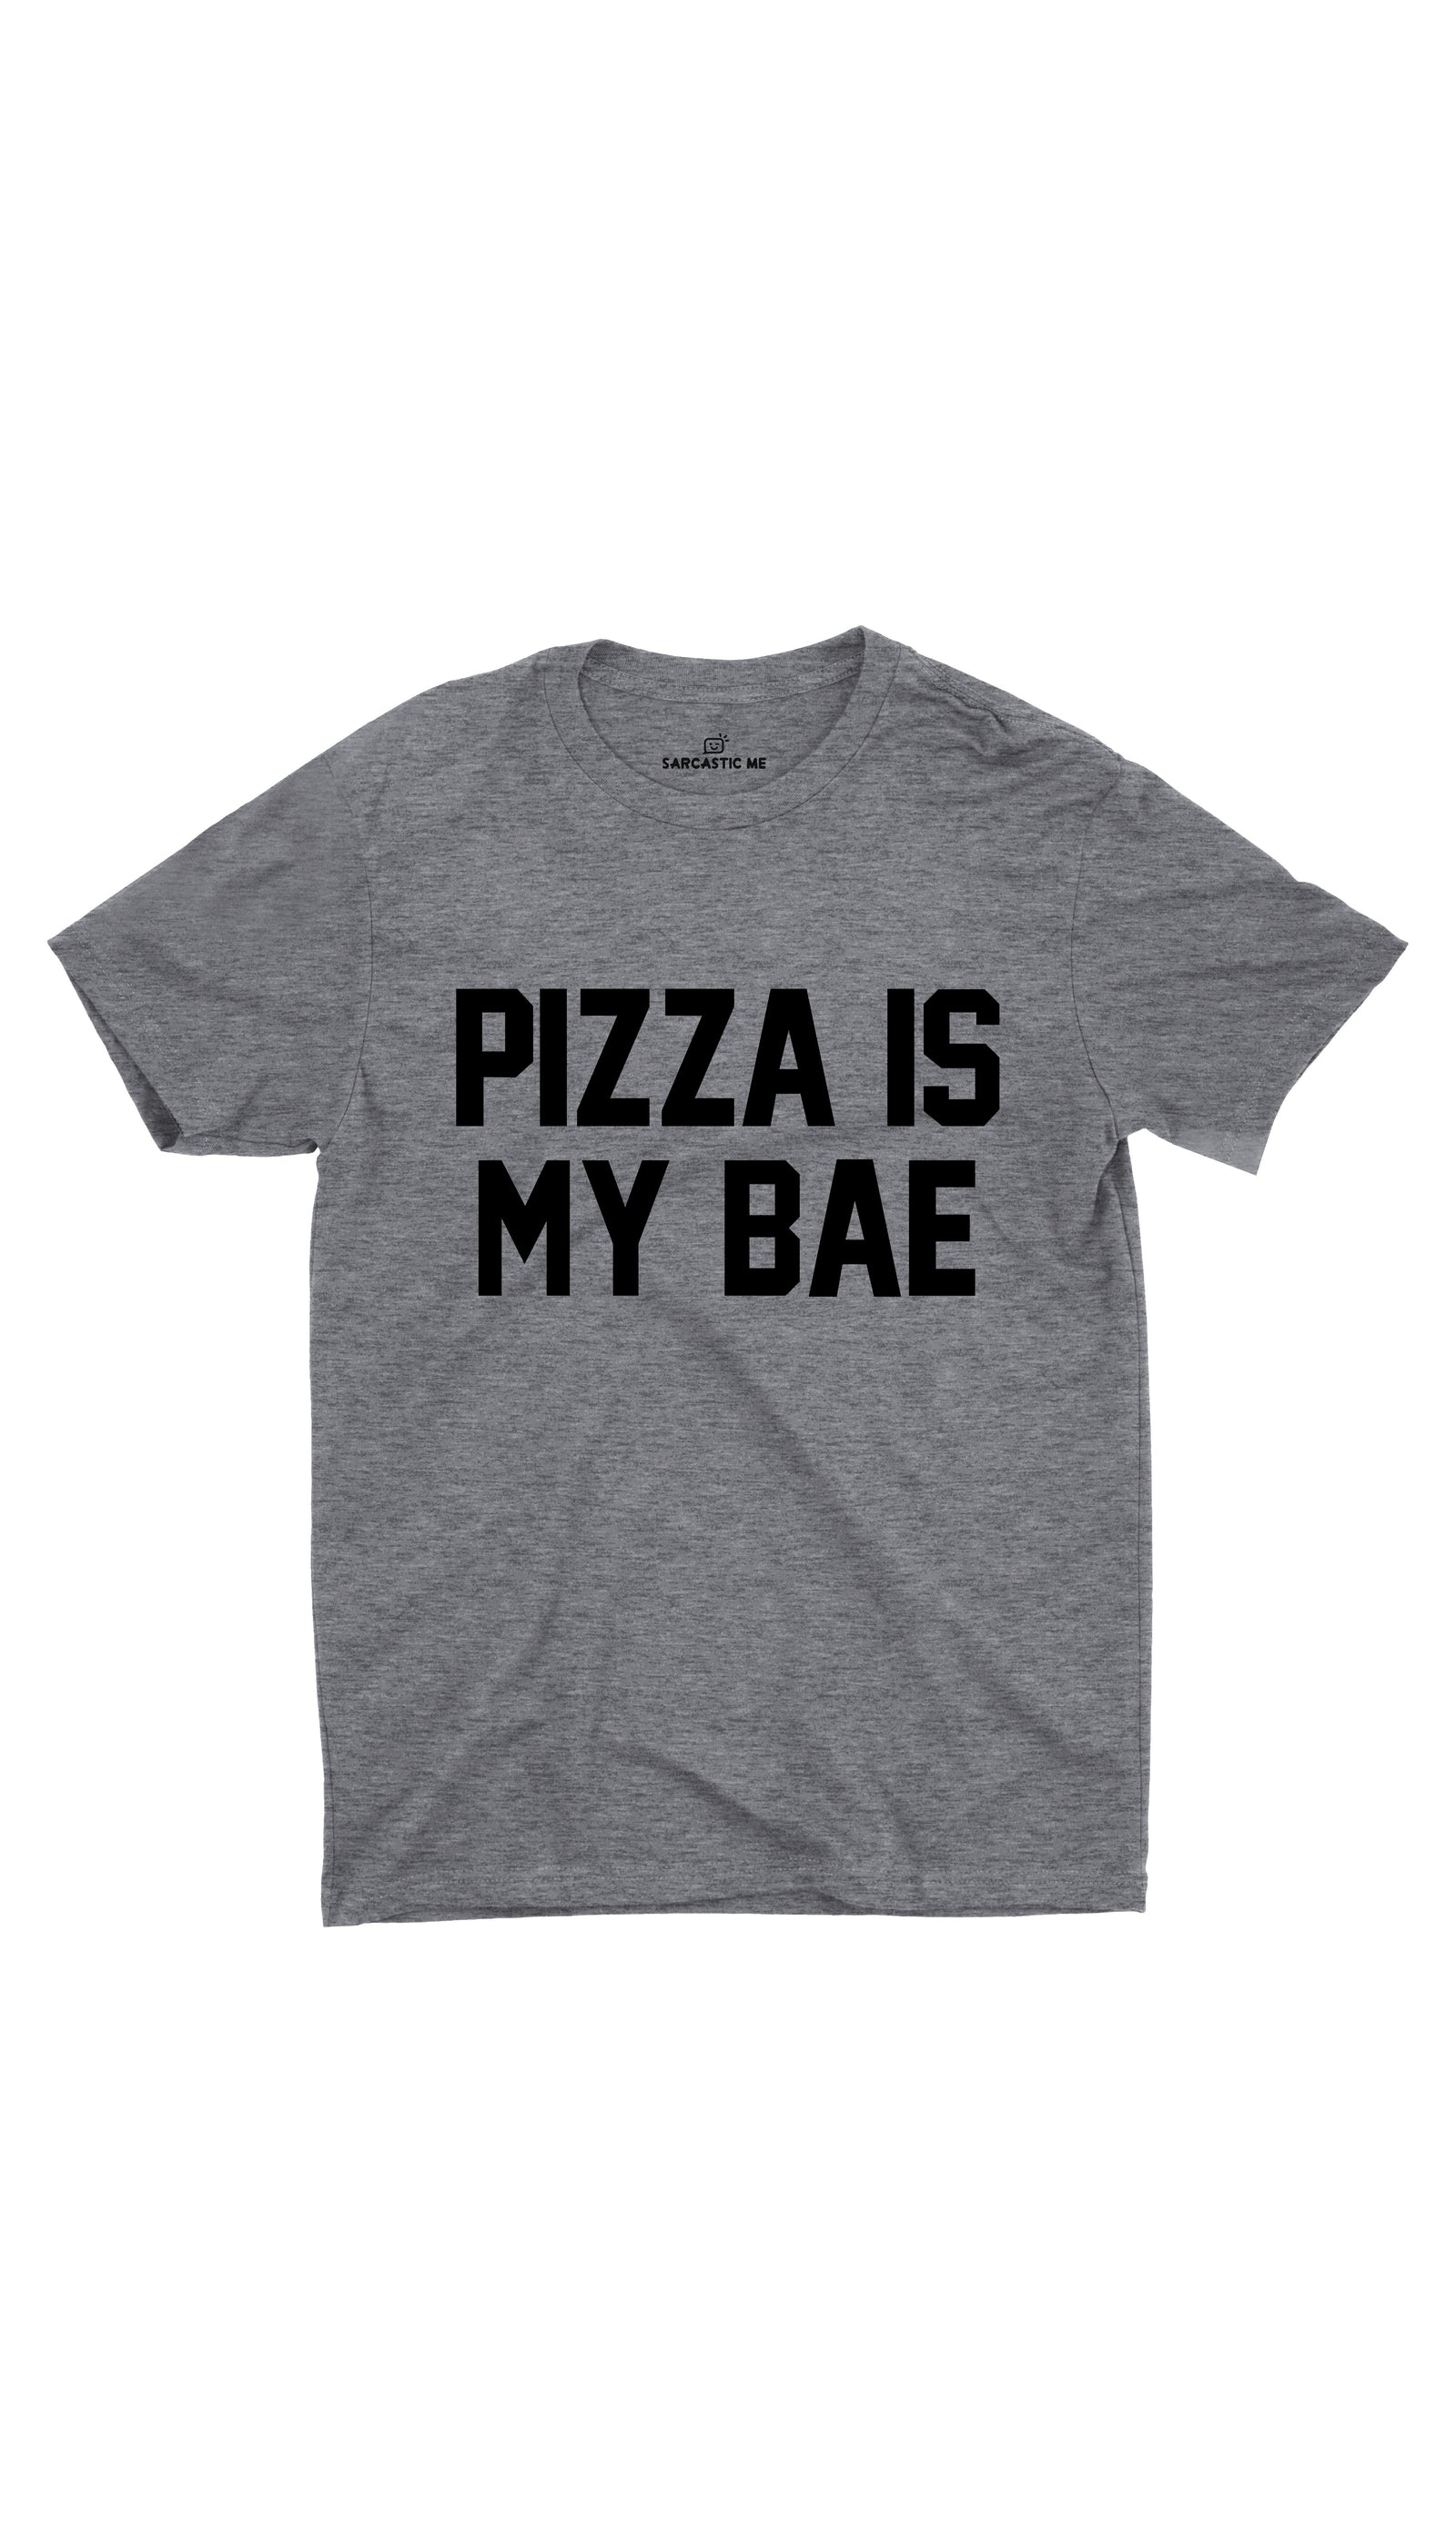 Pizza Is My Bae Gray Unisex T-shirt | Sarcastic ME